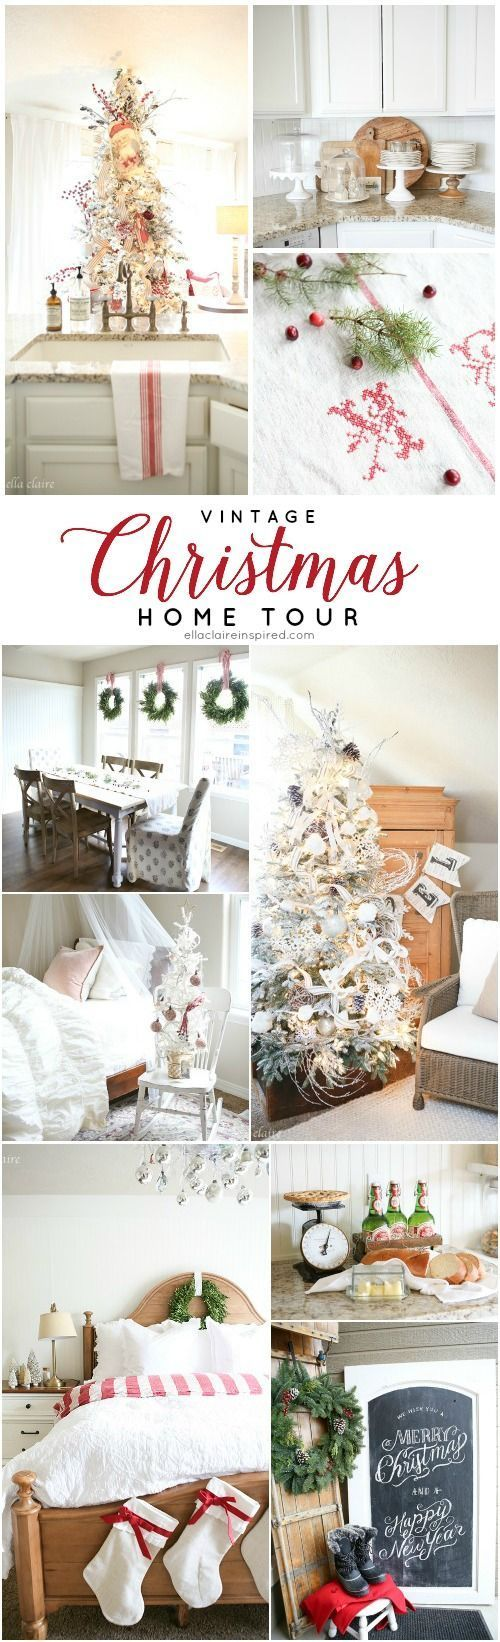 836 best christmas decor images on Pinterest | Christmas gift ideas ...